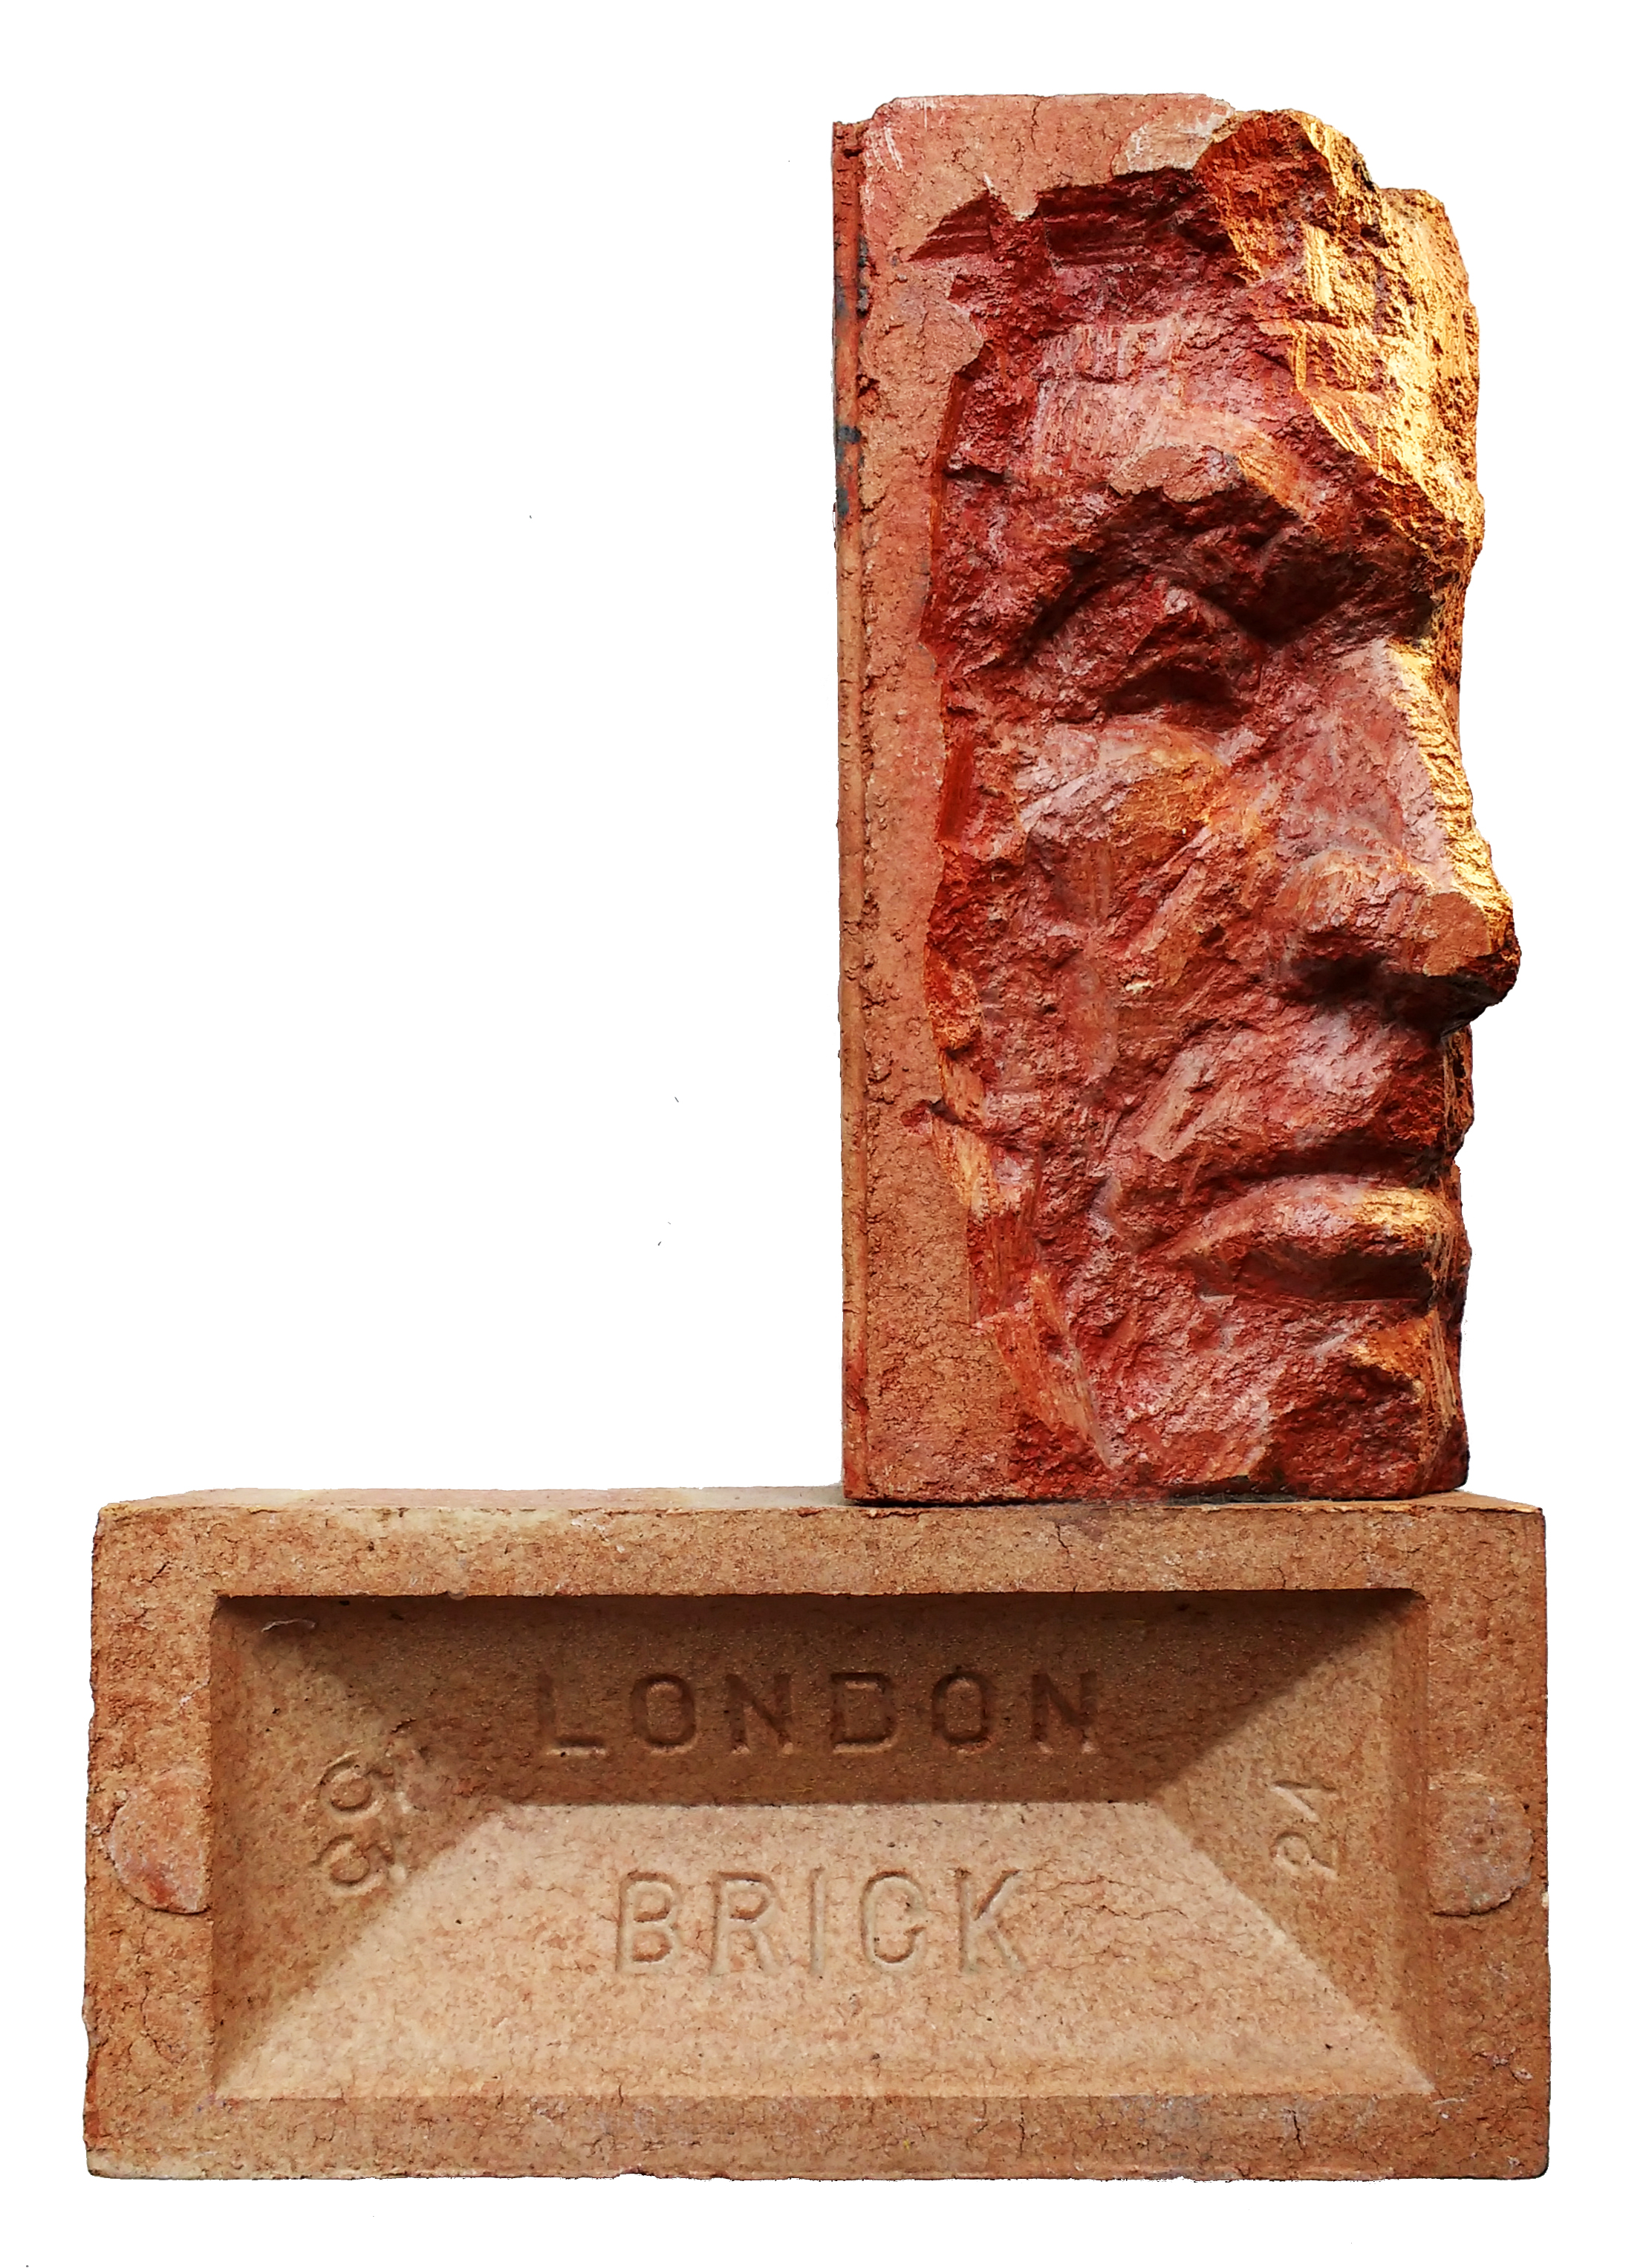 London Brick (chisled / carved)